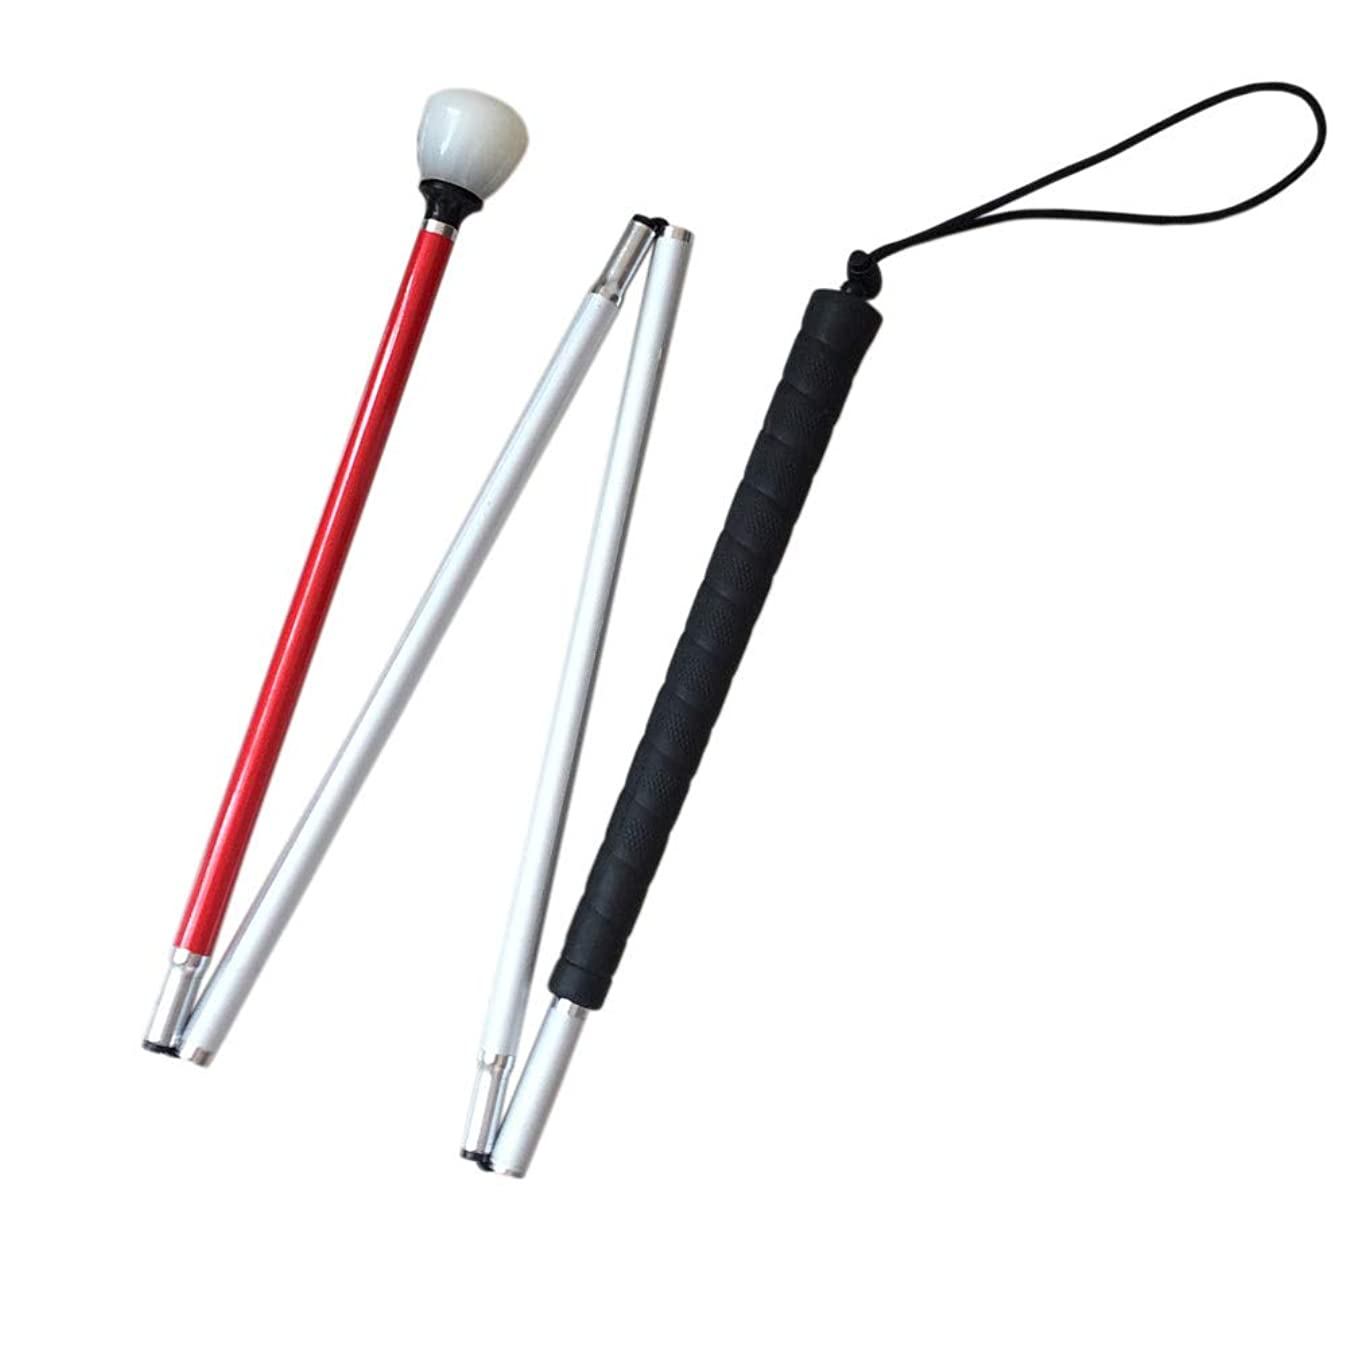 VISIONU White Cane Aluminum Mobility Folding Cane for the Blind (Folds Down 4 sections) (123 cm (48.4 inch))